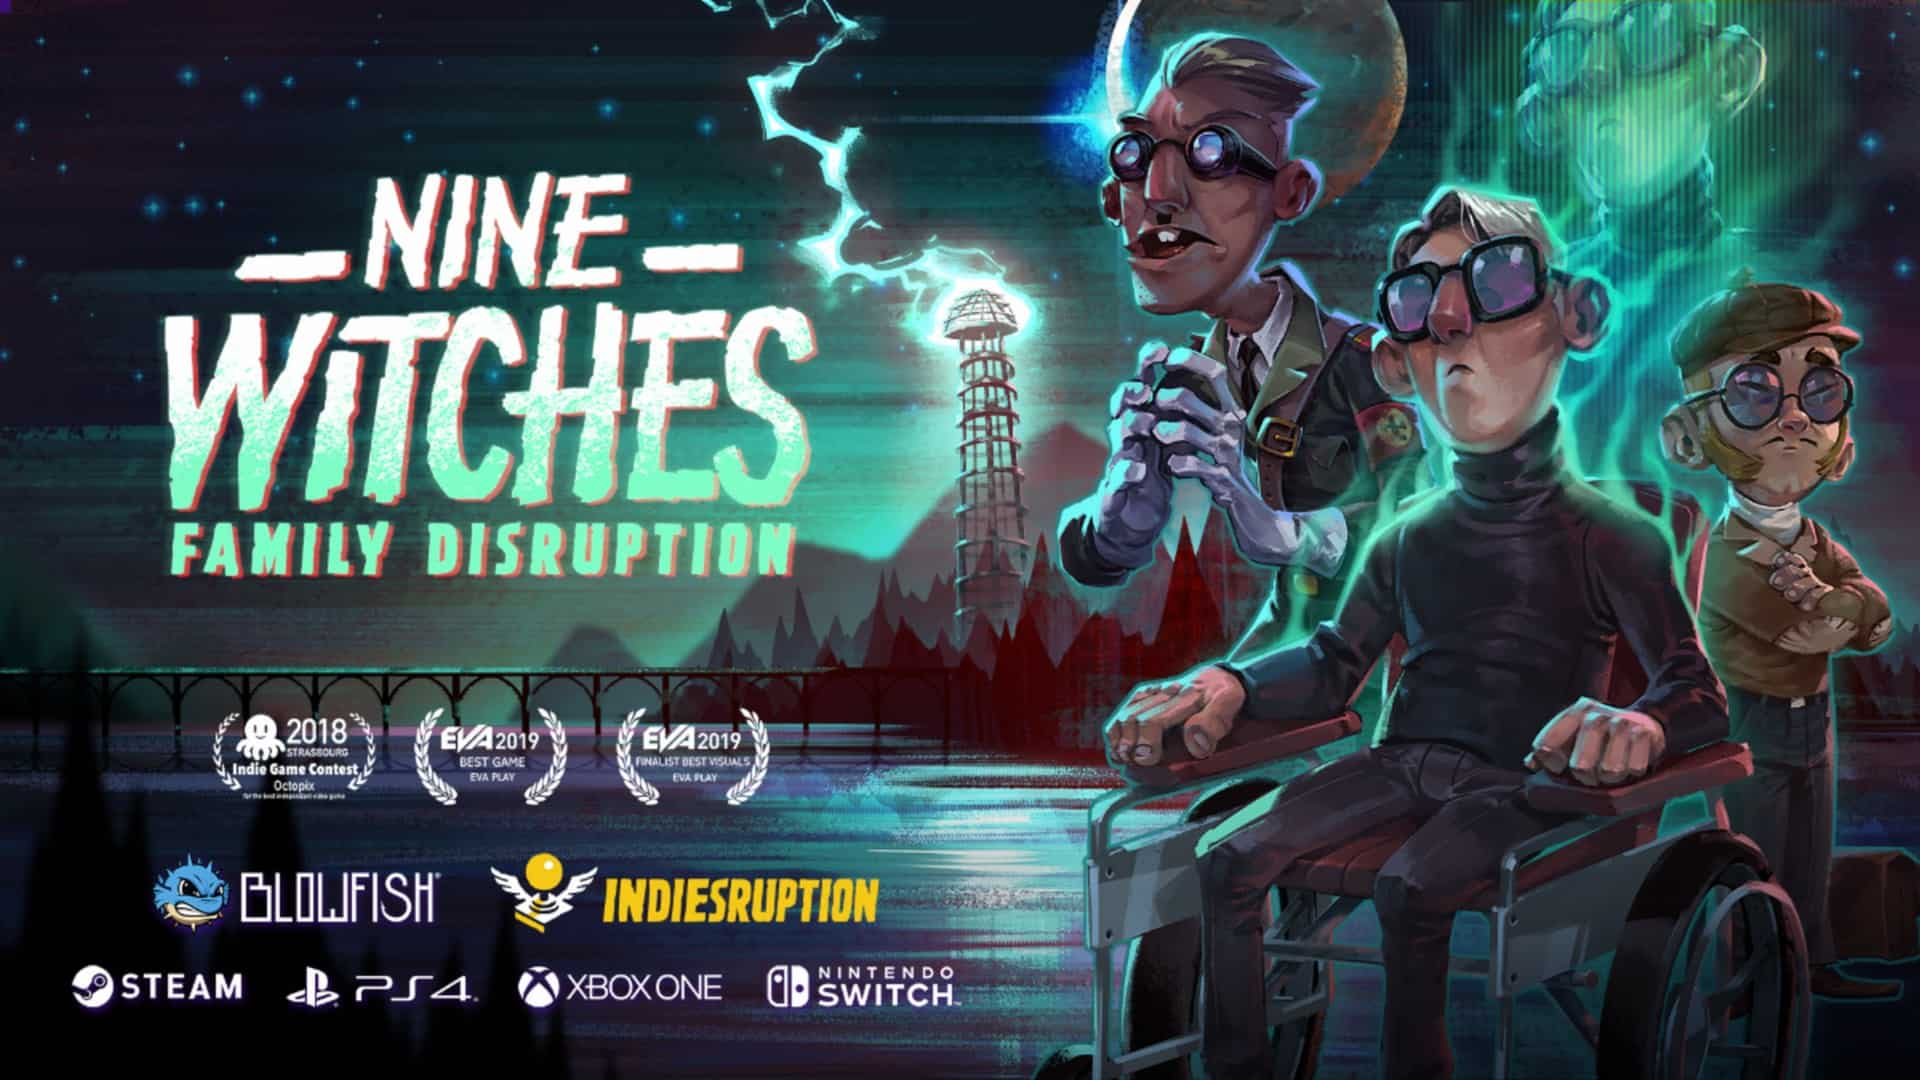 Nine Witches: Family Disruption – Available Now